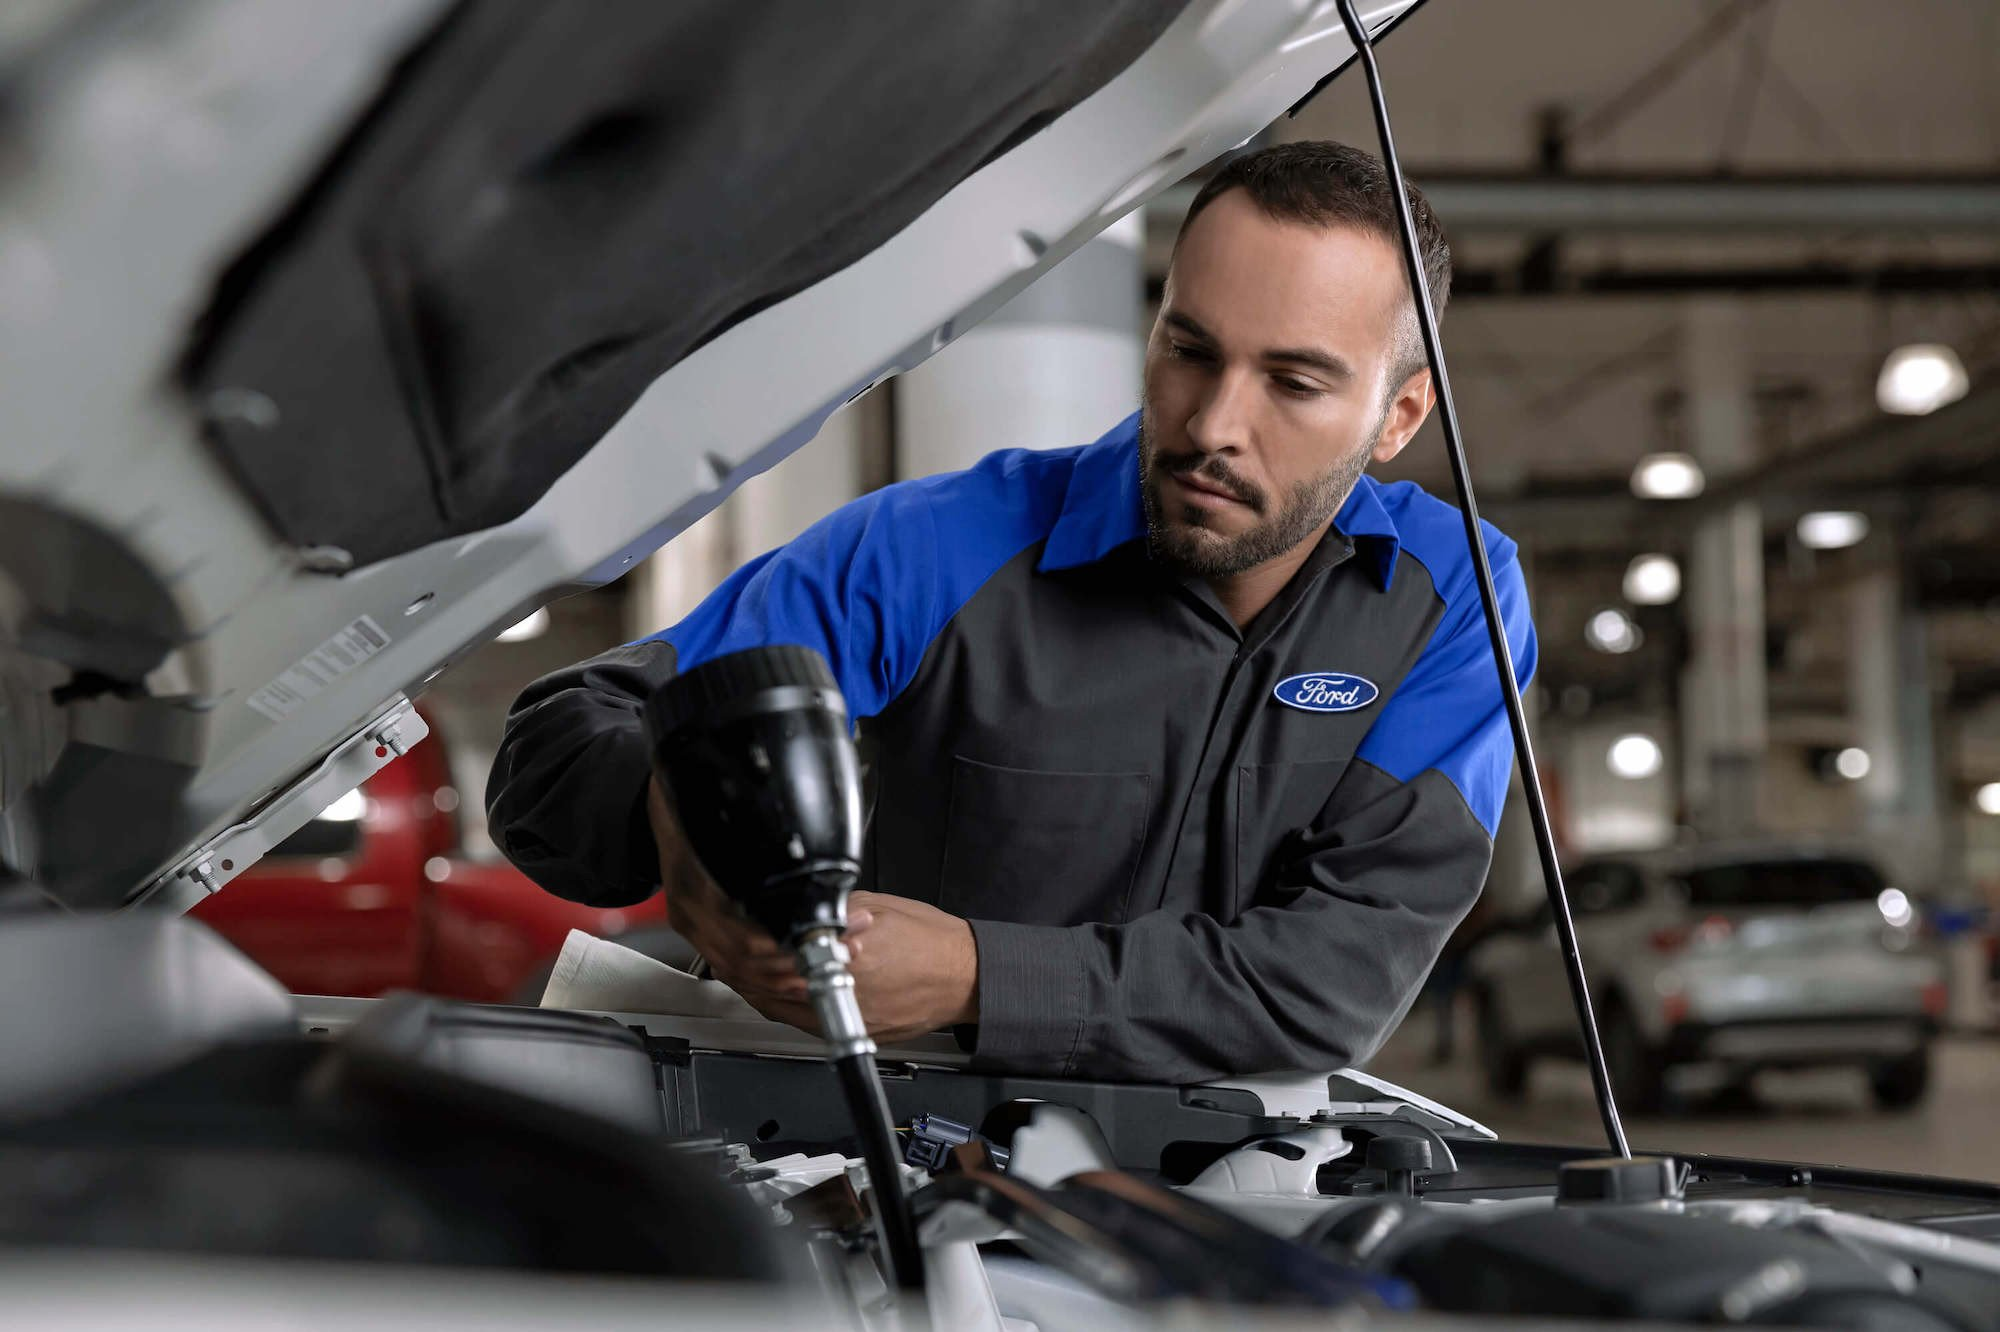 Quick Lane - Service Technician Changing Oil